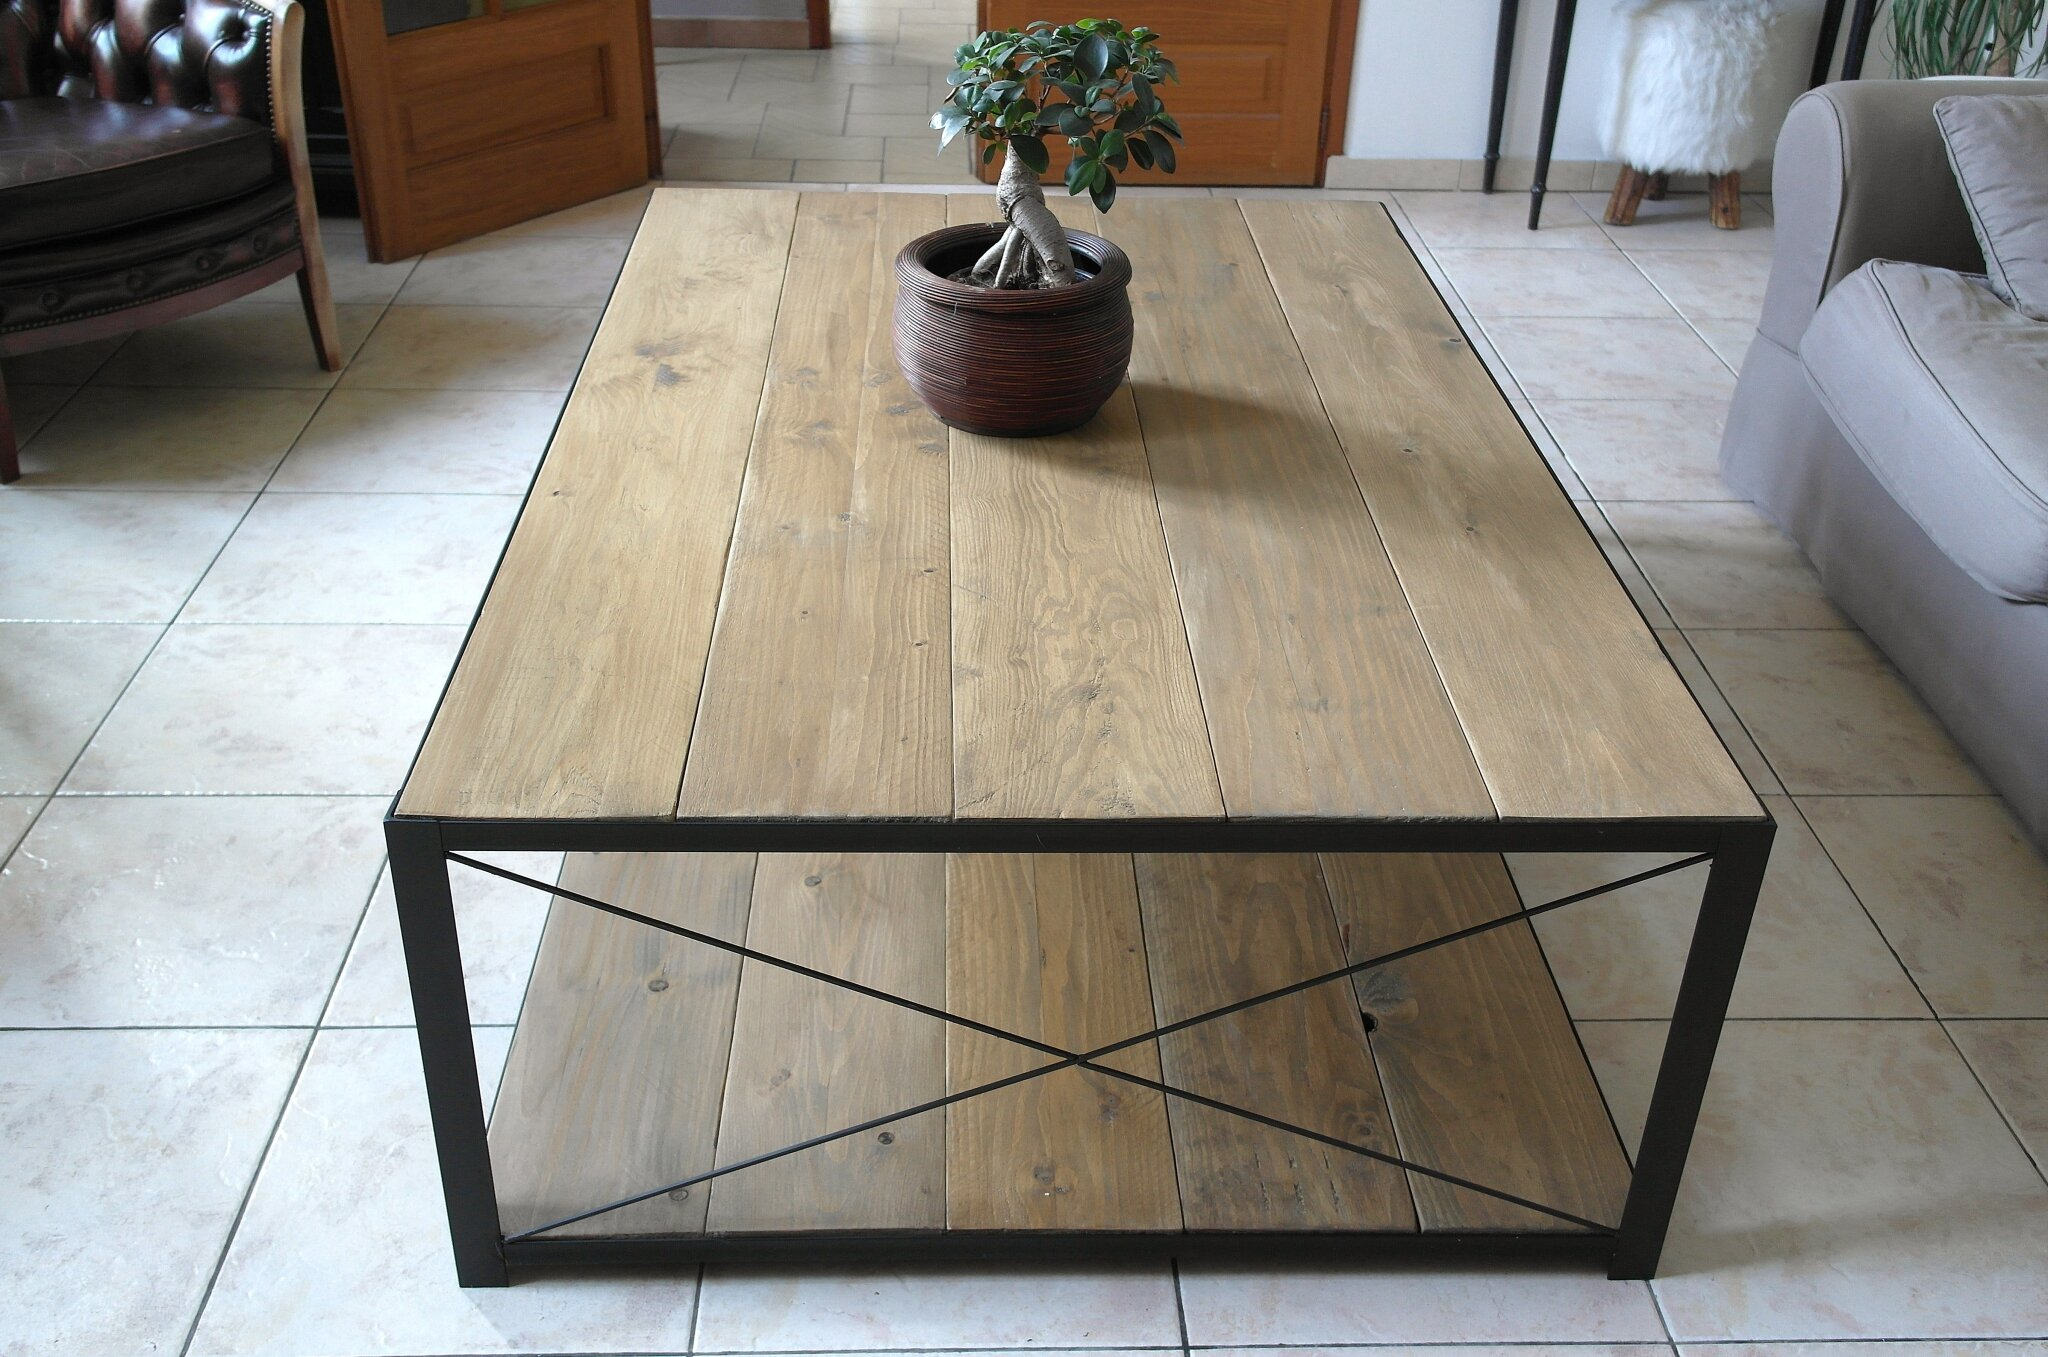 Table De Salon Fer Et Bois Table De Salon Fer Et Bois Table Basse Moderne Bois Lepetitsiam